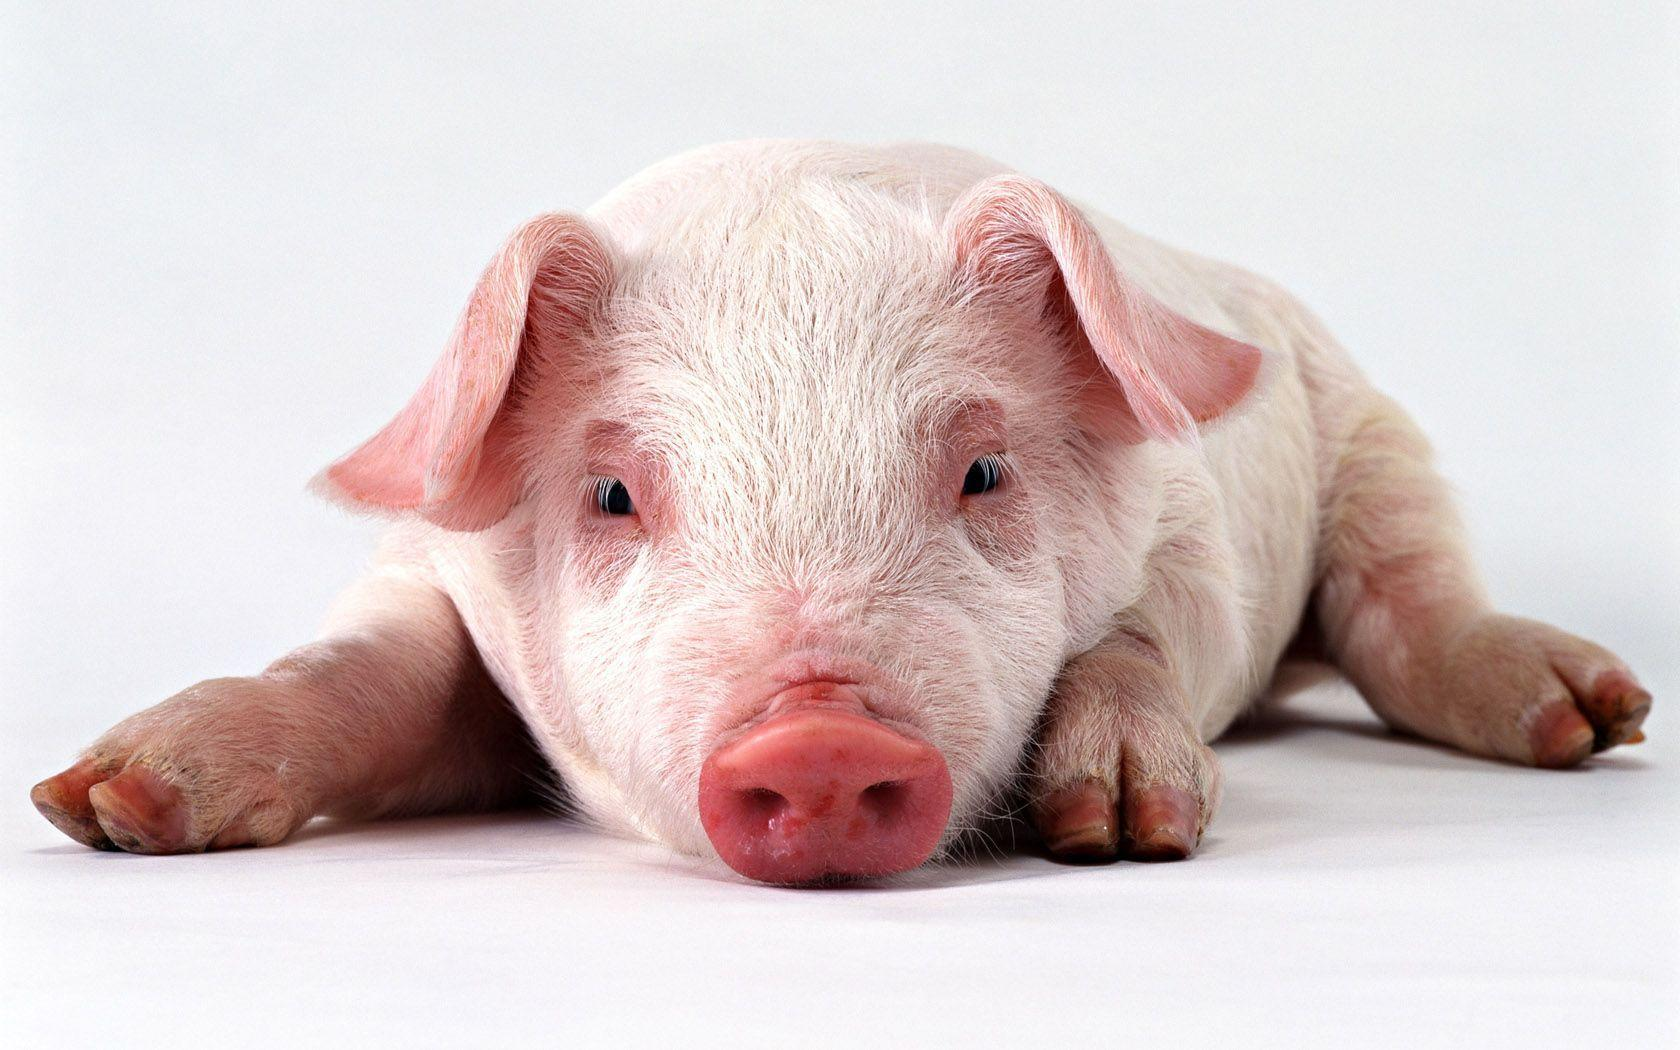 Wallpapers For > Funny Pig Wallpaper